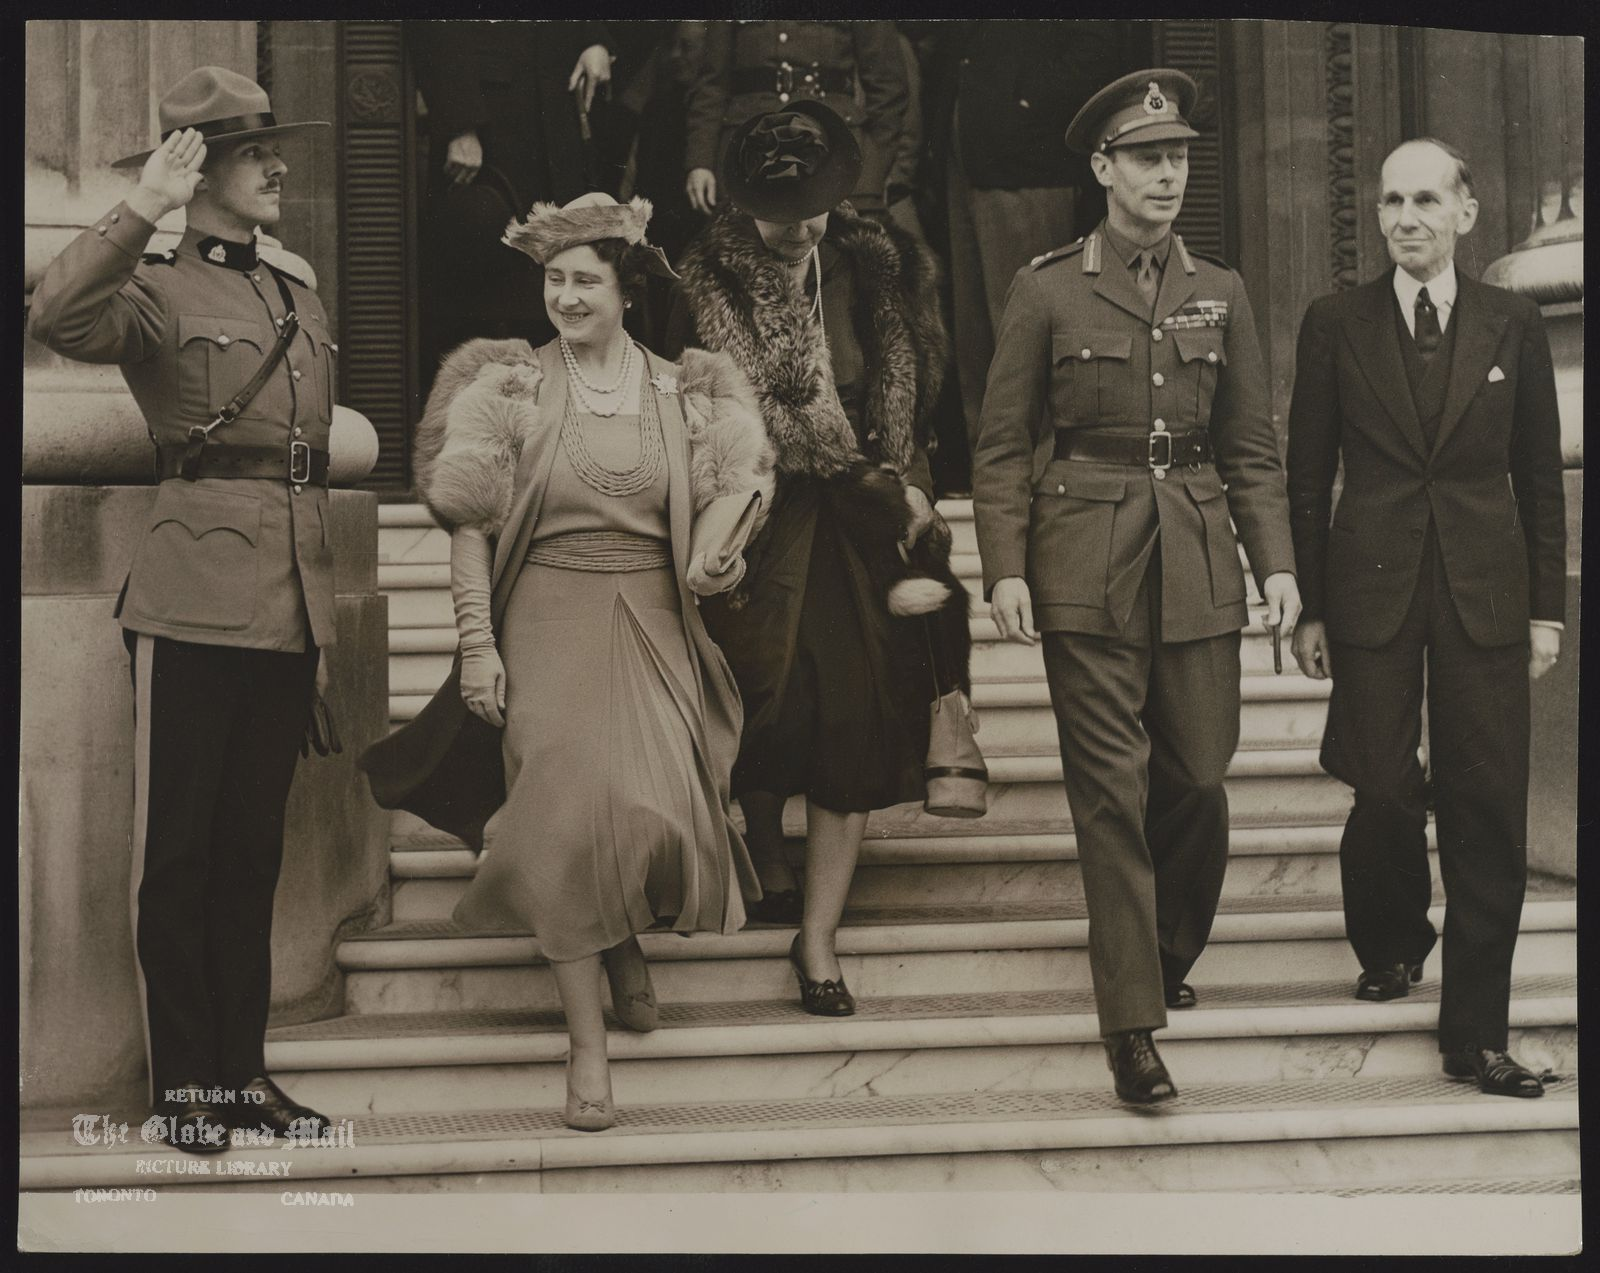 The notes transcribed from the back of this photograph are as follows: ROYAL FAMILY GREAT BRITAIN KING GEORGE VI & QUEEN ELIZABETH KING AND QUEEN VISIT CANADA HOUSE [IN LONDON]. THE KING AND QUEEN VISITED CANADA HOUSE, LONDON (THE HEADQUARTERS OF THE DOMINION) THIS AFTERNOON, OCTOBER 18, [1939]. THEY INSPECTED THE WORK DONE BY THE WORK ROOM ORGANISED BY THE WIFE OF HIGH COMMISSIONER VINCENT MASSEY. BABY CLOTHES AND KNITTED WEAR FOR THE TROOPS WERE SHOWN. ASSOCIATED PRESS PHOTO SHOWS: THE KING AND QUEEN LEAVING CANADA HOUSE THIS AFTER NOON, OCTOBER 18, SALUTED BY THE GUARD OF THE ROYAL CANADIAN MOUNTED POLICE. LEFT TO RIGHT; THE QUEEN; MRS. VINCENT MASSEY; THE KING; HIGH COMMISSIONER VINCENT MASSEY.